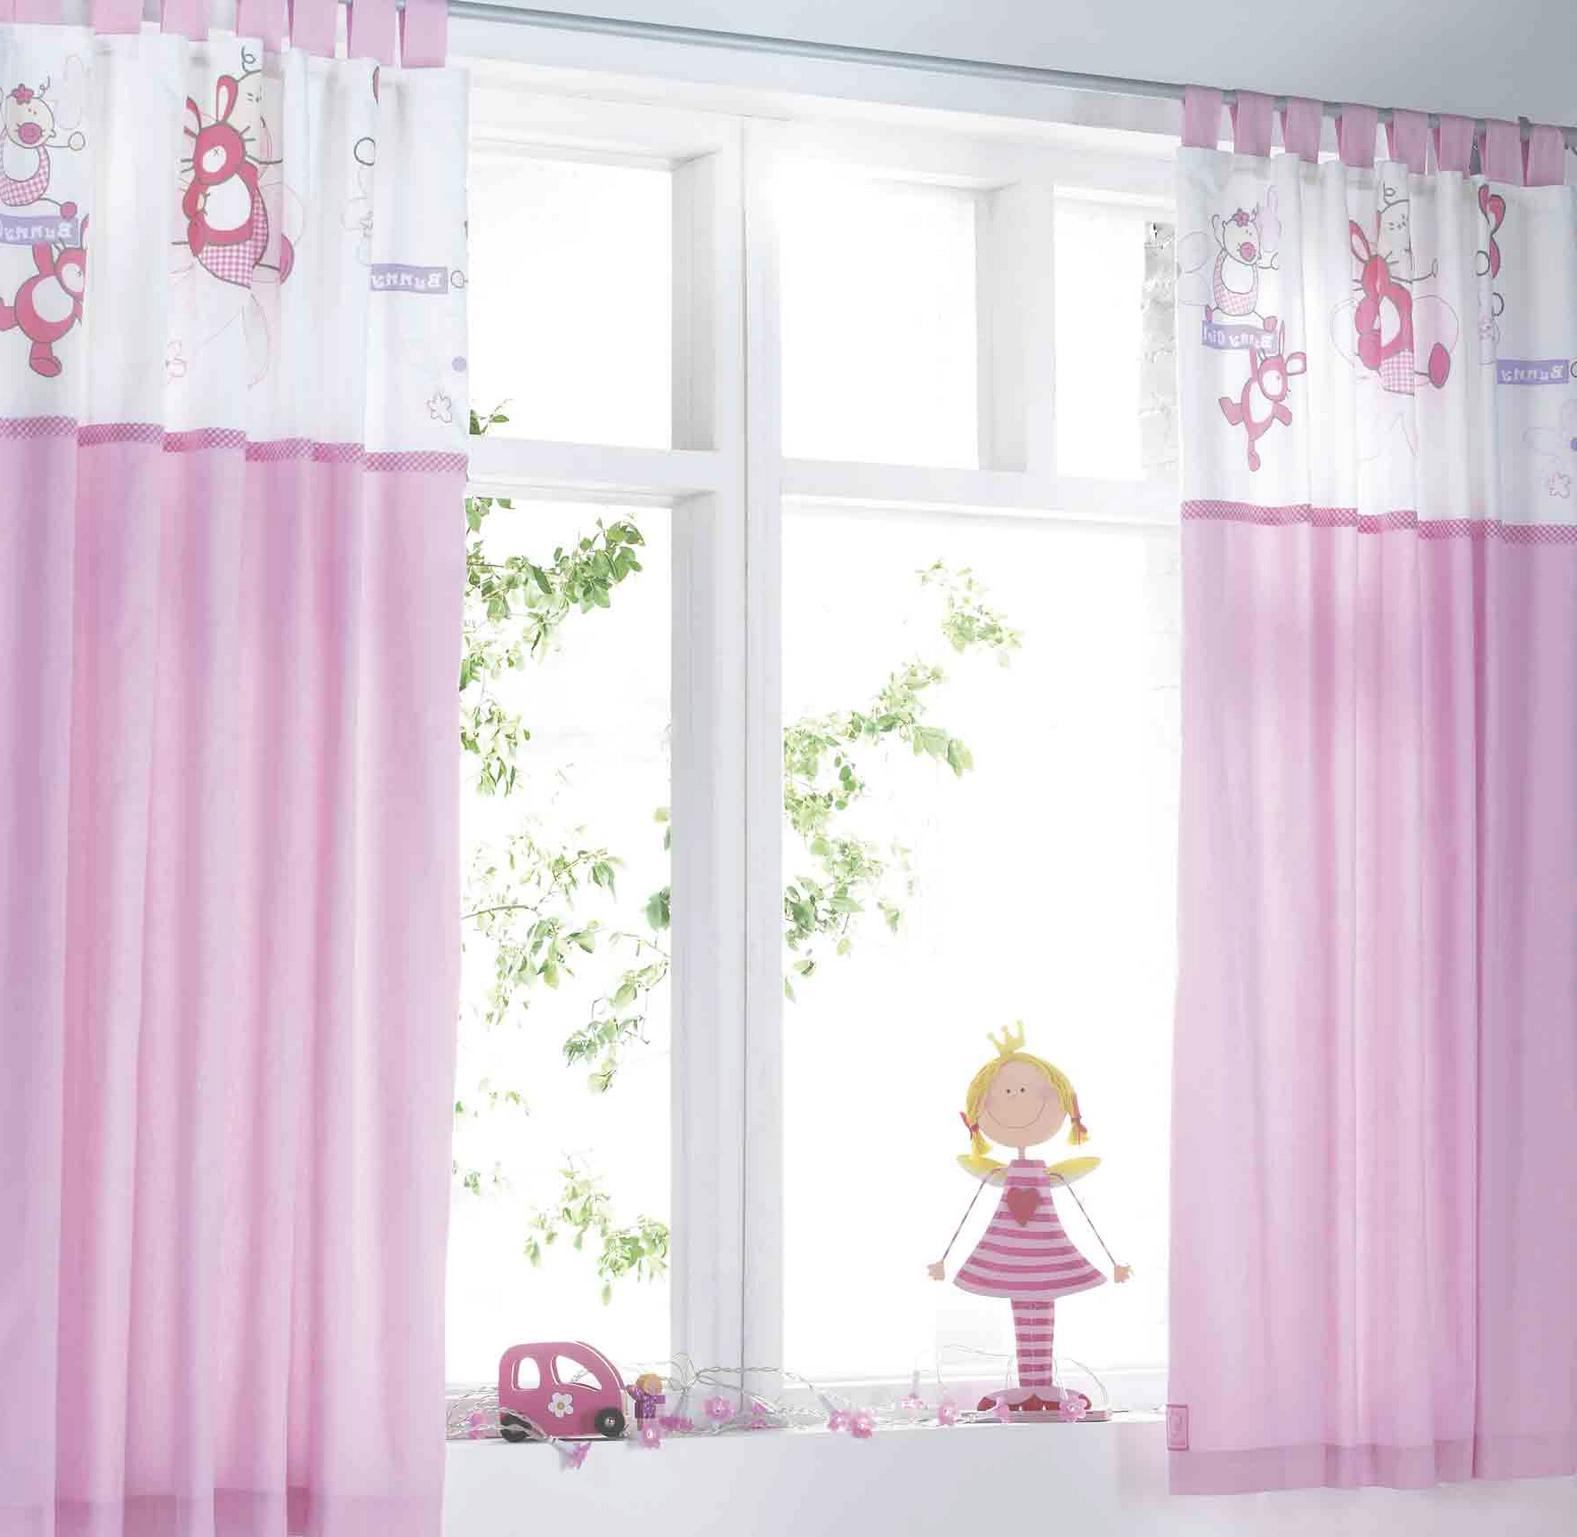 Kids Bedroom Curtains Cute Window Treatment Kids Bedroom Curtains Custom Home